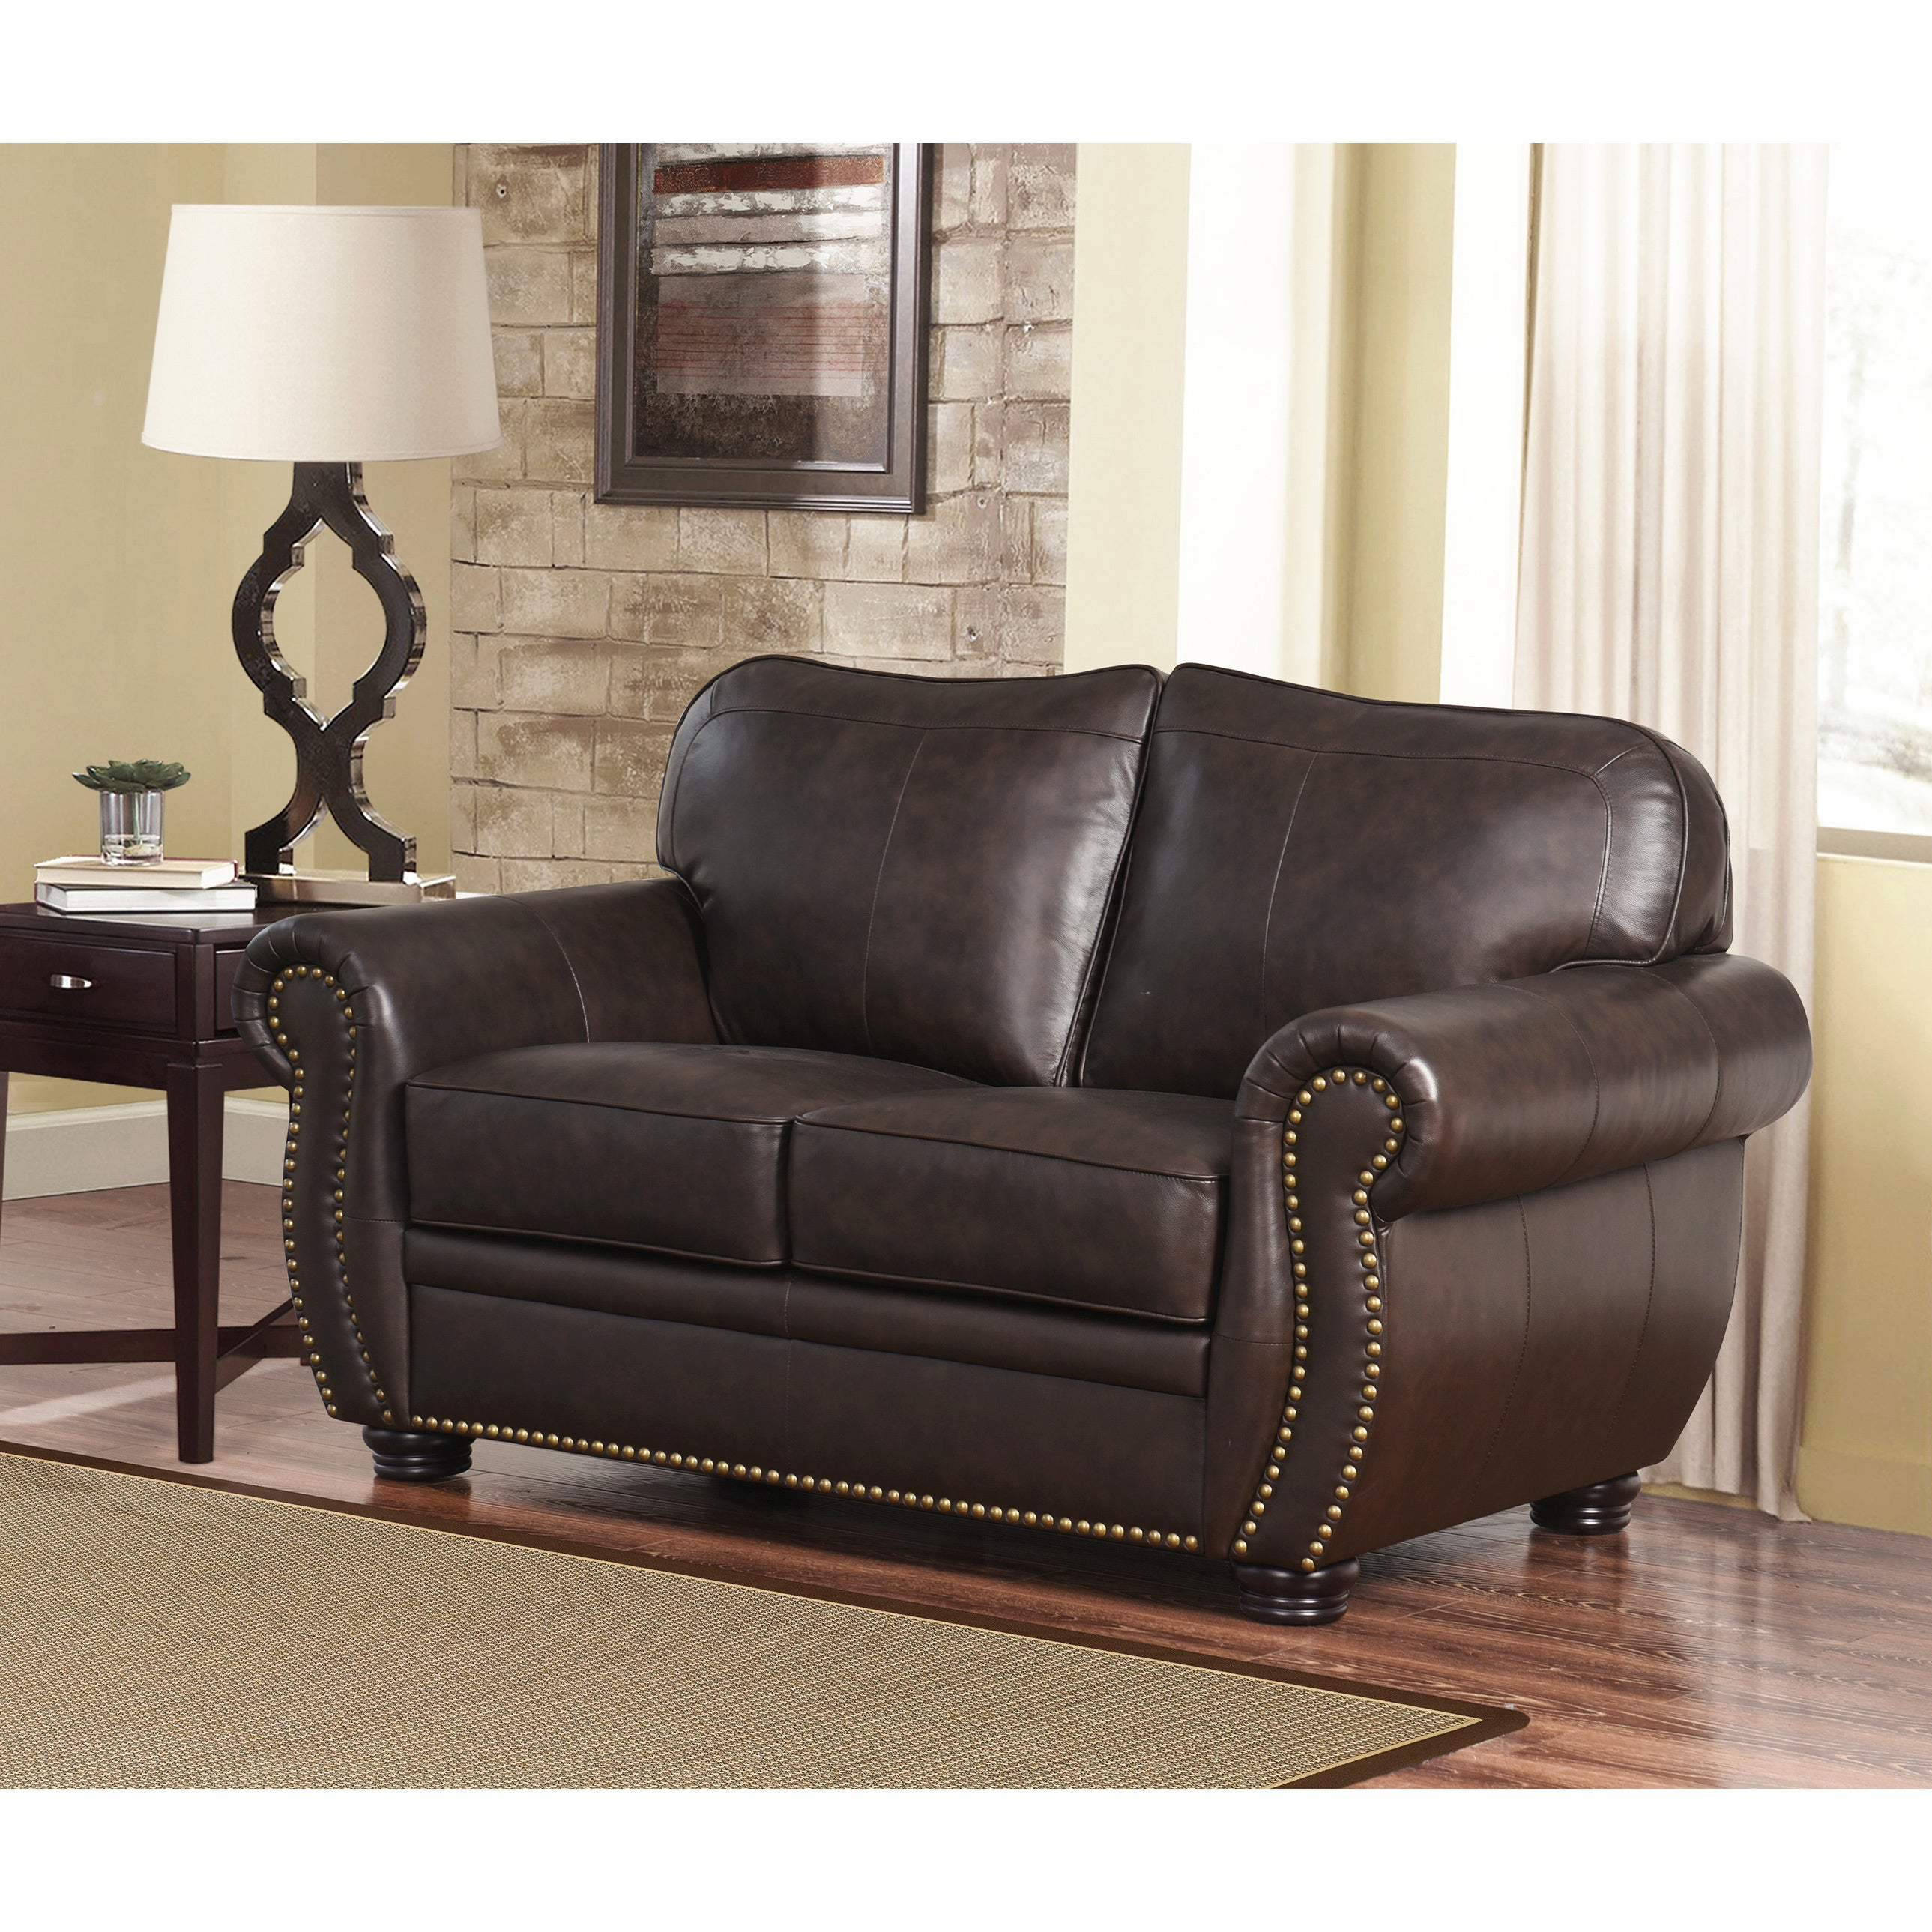 Abbyson Richfield Top Grain Leather 2 Piece Living Room Set   Free Shipping  Today   Overstock.com   13651288